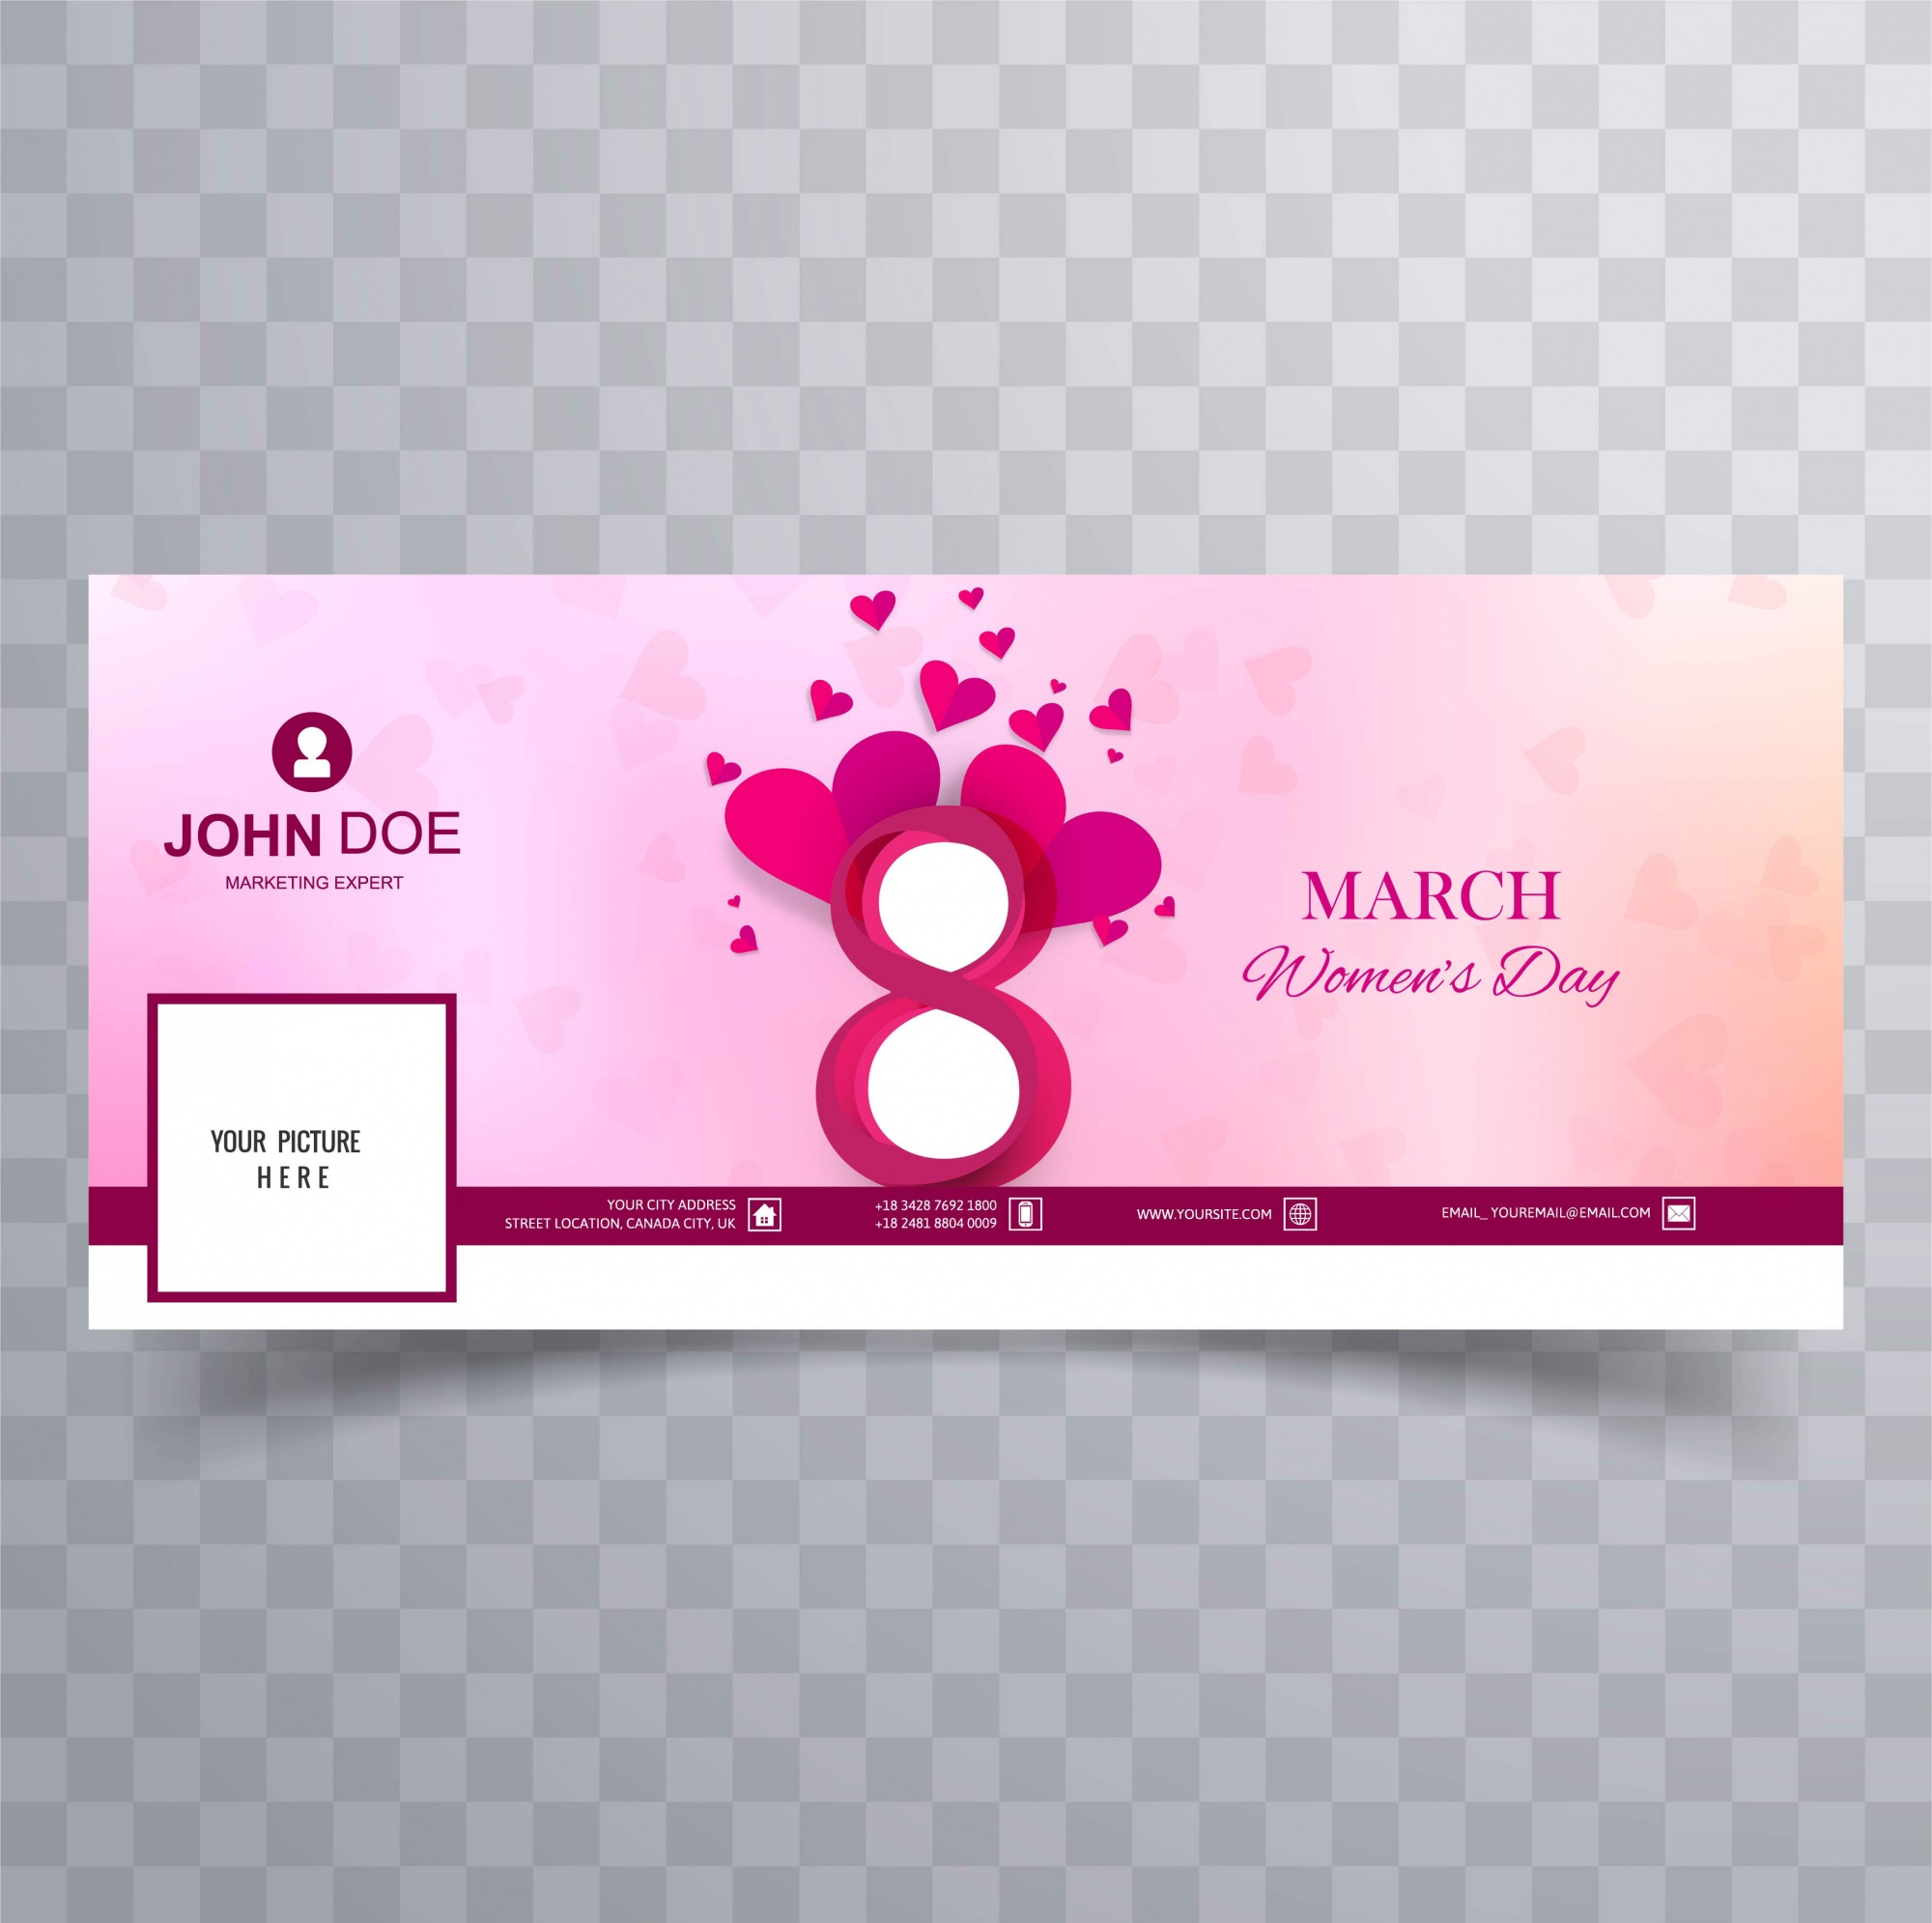 Women's day facebook cover design